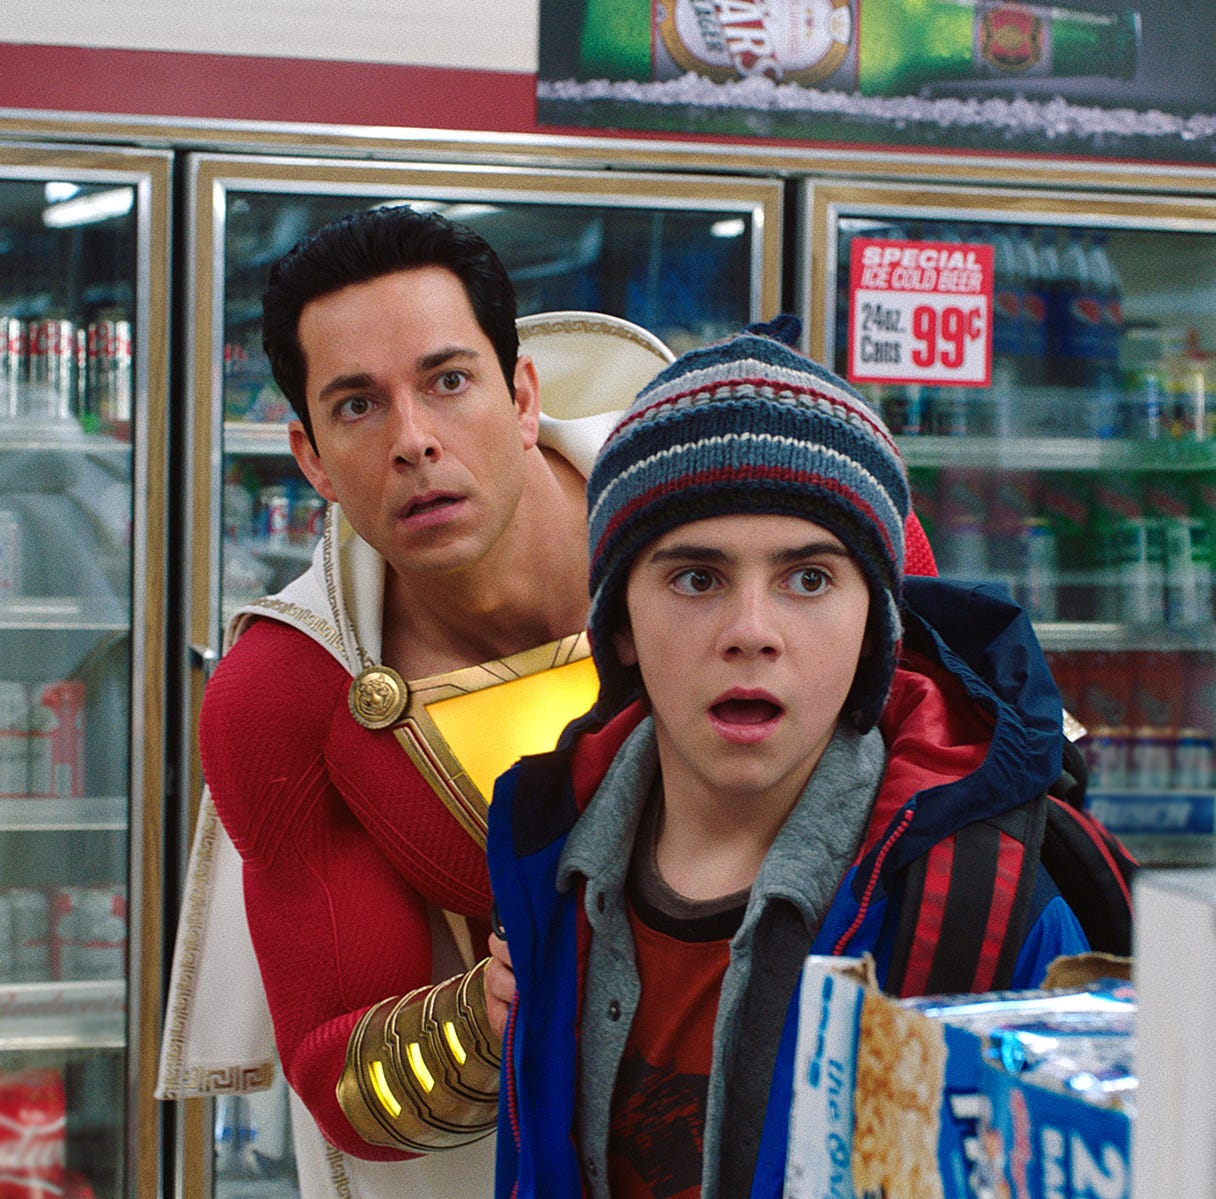 'Shazam!' is the closest DC has come to matching Marvel's cheeky humor